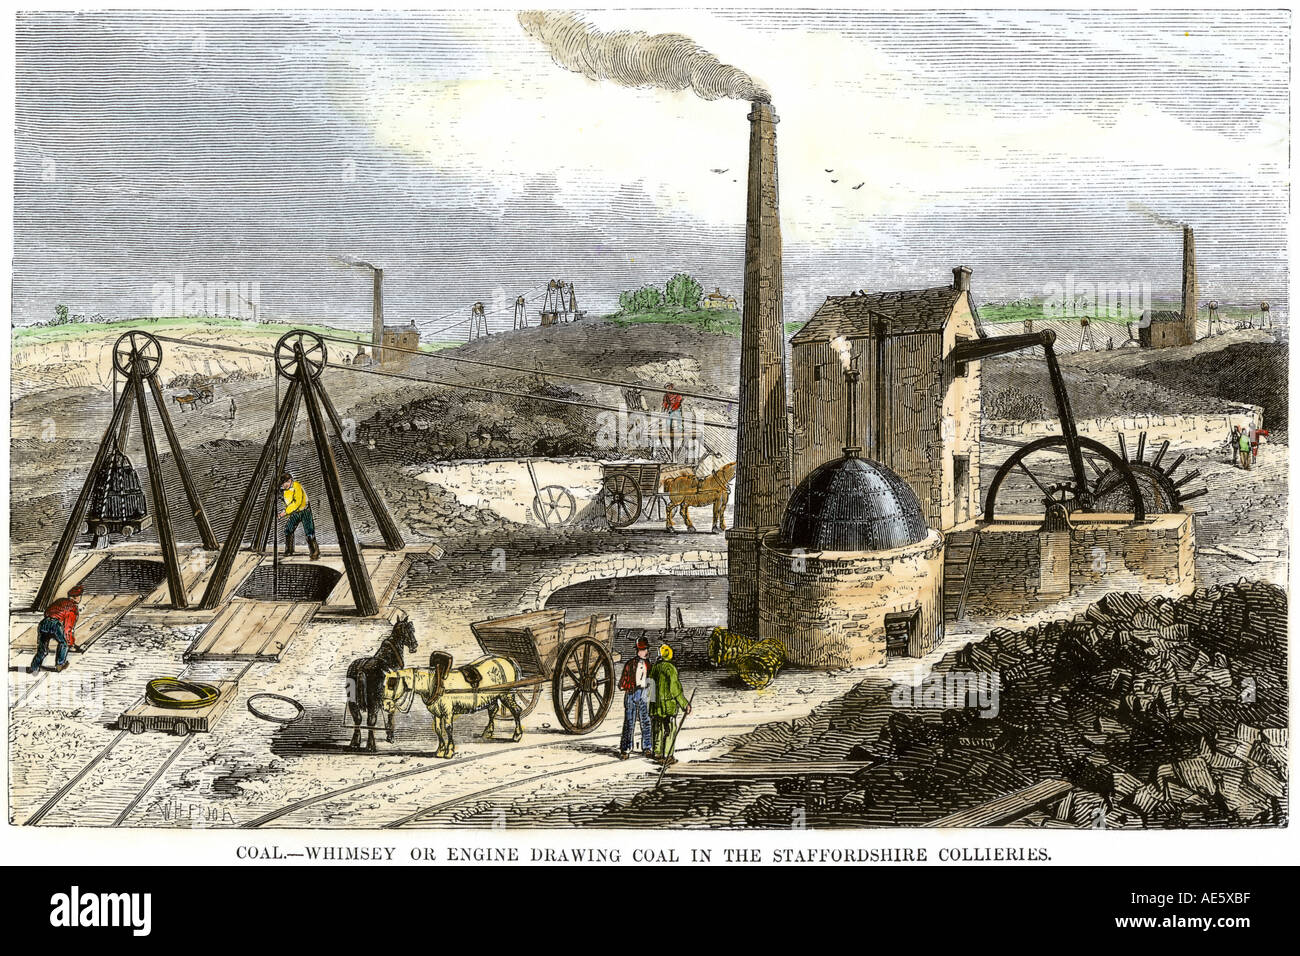 Whimsey Engine Drawing Coal In The Staffordshire Mines England S Ae Xbf